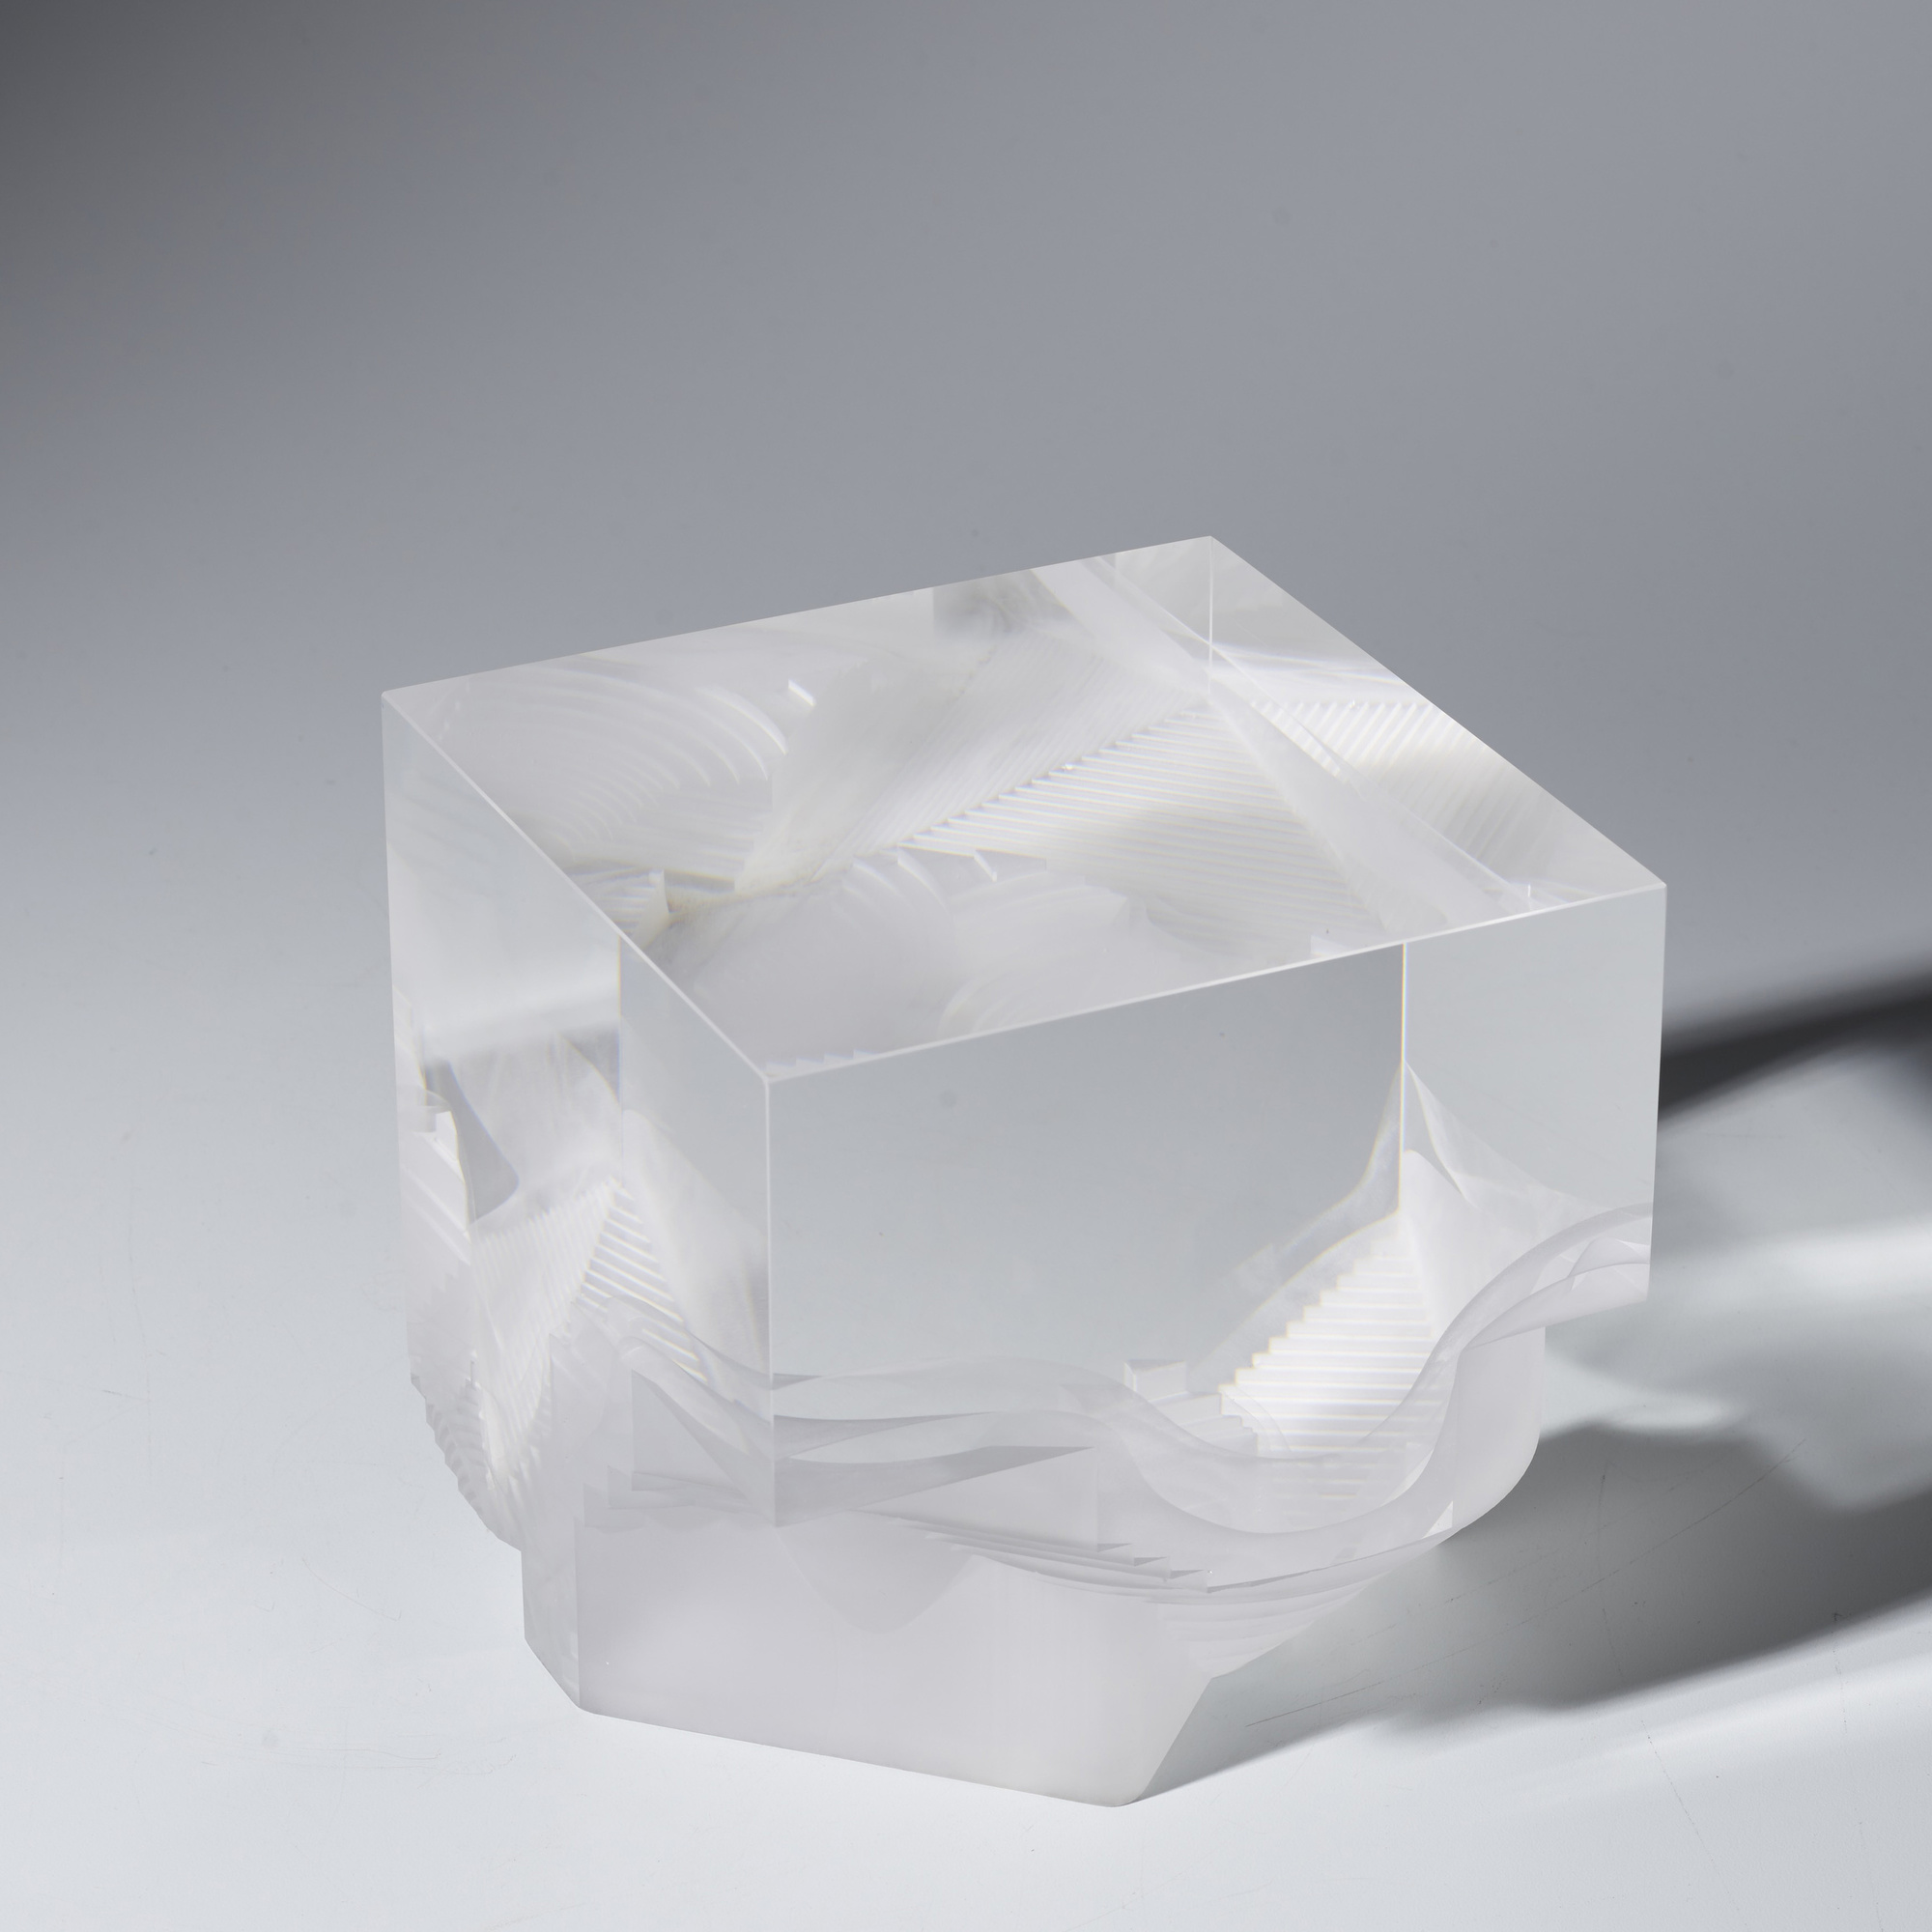 158: Steven Weinberg / Cube no. 981201 (2 of 5)